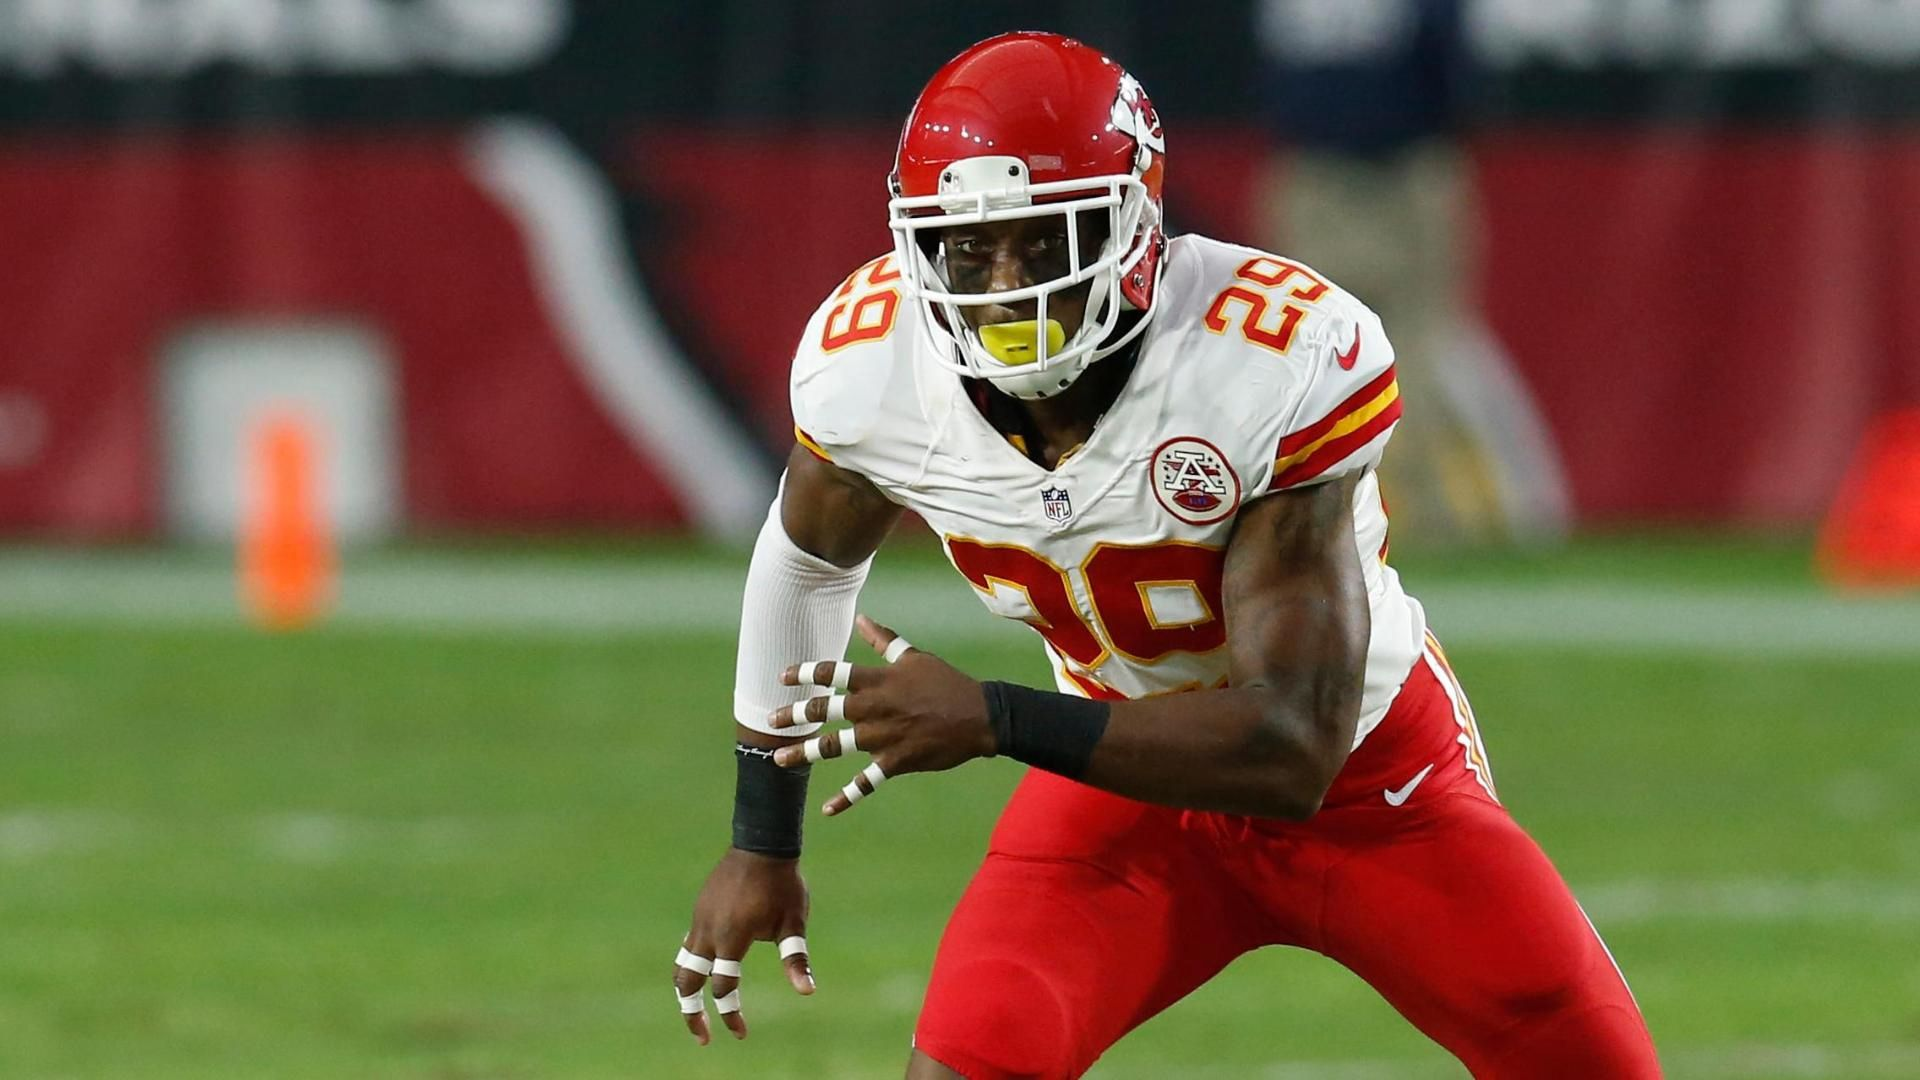 Downloaderic Berry, Kansas City, Athlete Wallpaper, Background